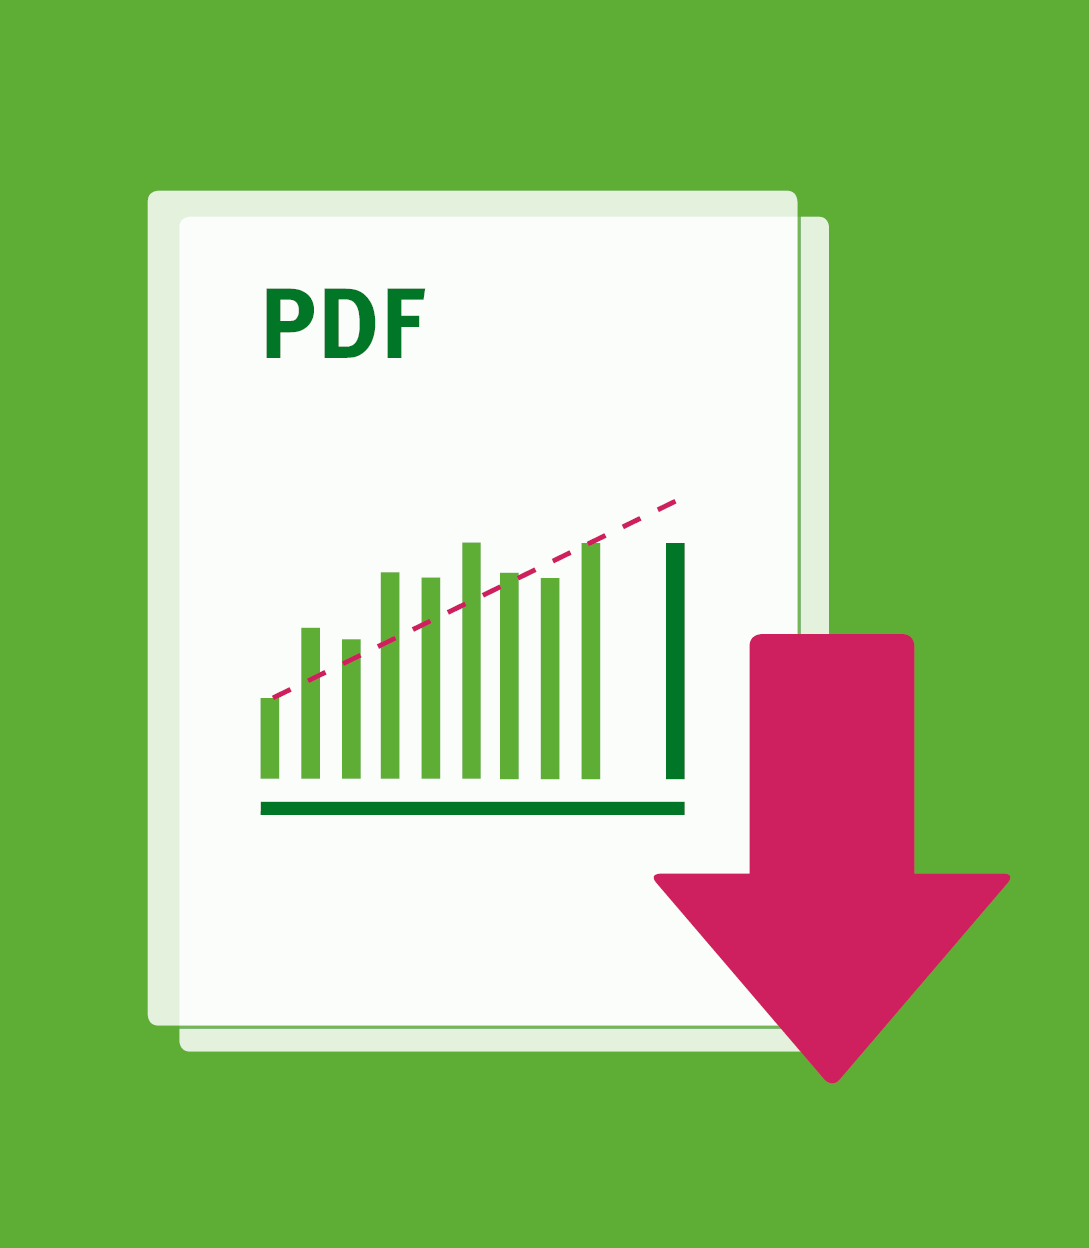 There is a stack of paper with a diagram on it and the label pdf. An arrow indicates that a pdf can be downloaded here.